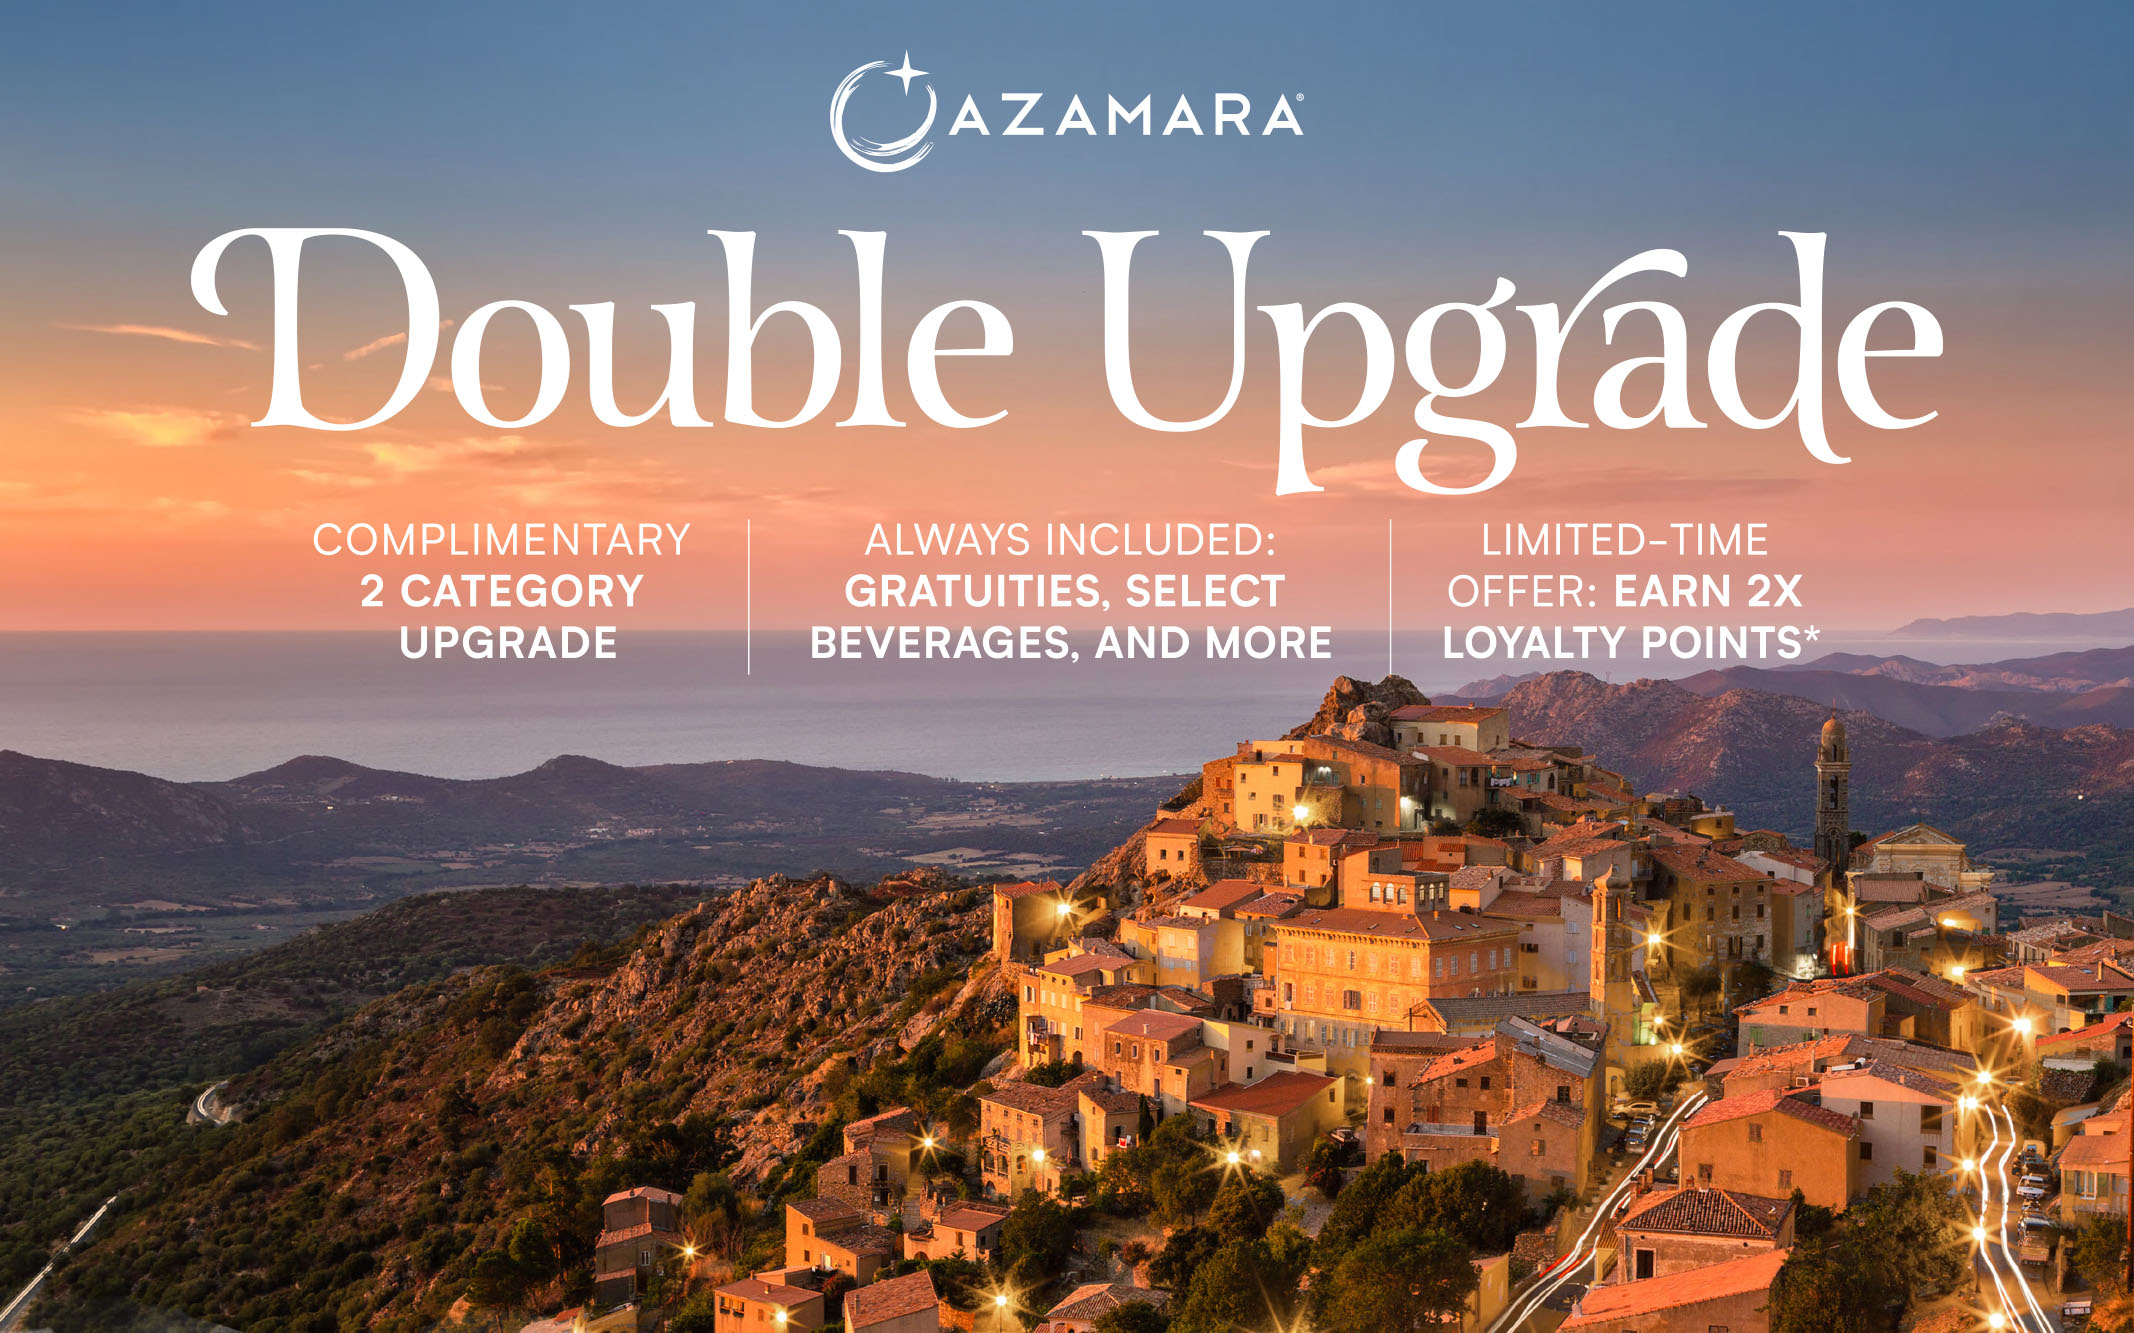 Azamara Double Upgrade + Gratuities + Up to to $300 Shipboard Credit